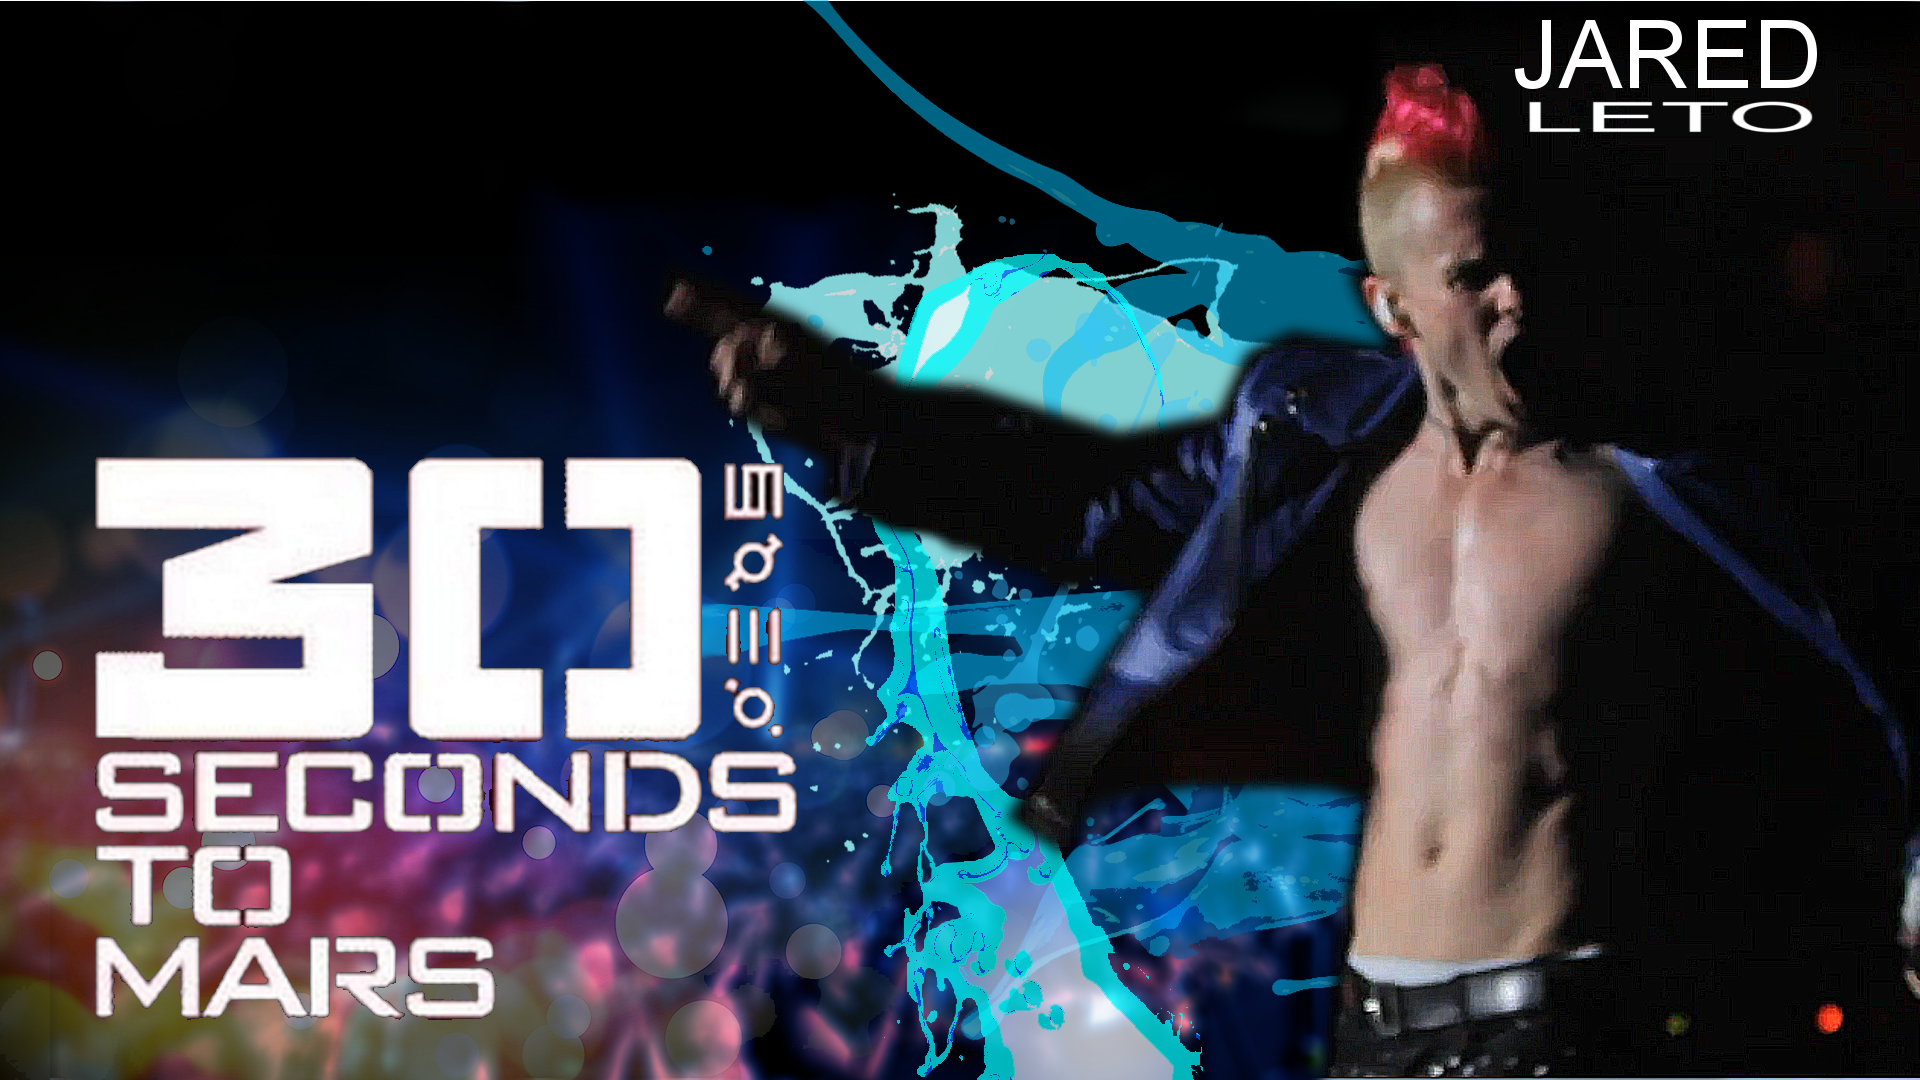 30 seconds to mars - Wallpaper - Jared by guichearmo on ...